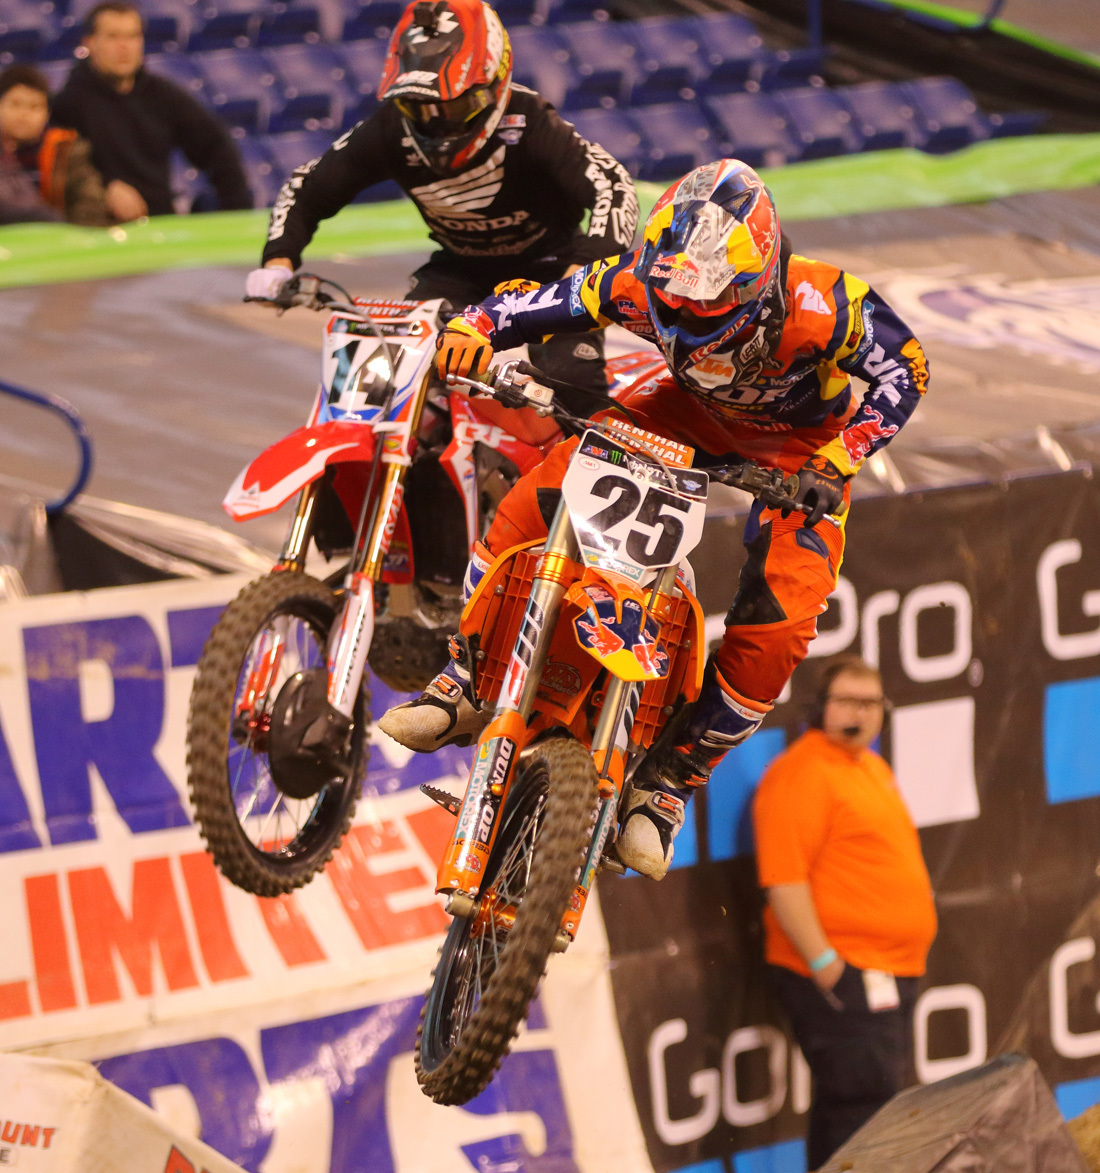 2017 Monster Energy Supercross Indianapolice_d0091546_08391393.jpg